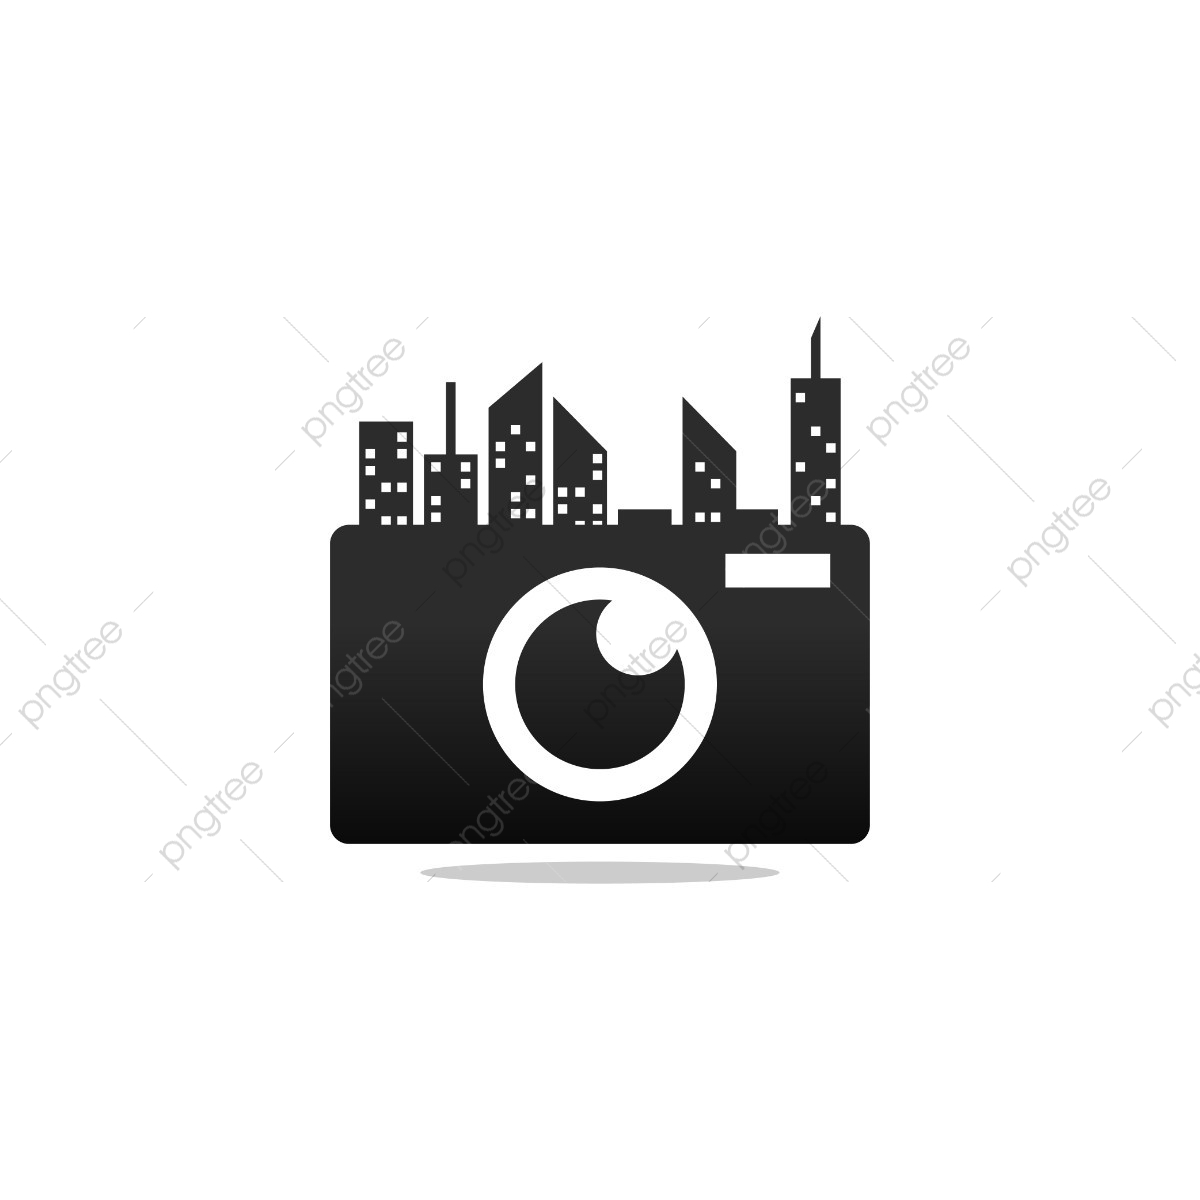 photography logo png vector psd and clipart with transparent background for free download pngtree https pngtree com freepng camera photography logo and icon template vector 3555634 html